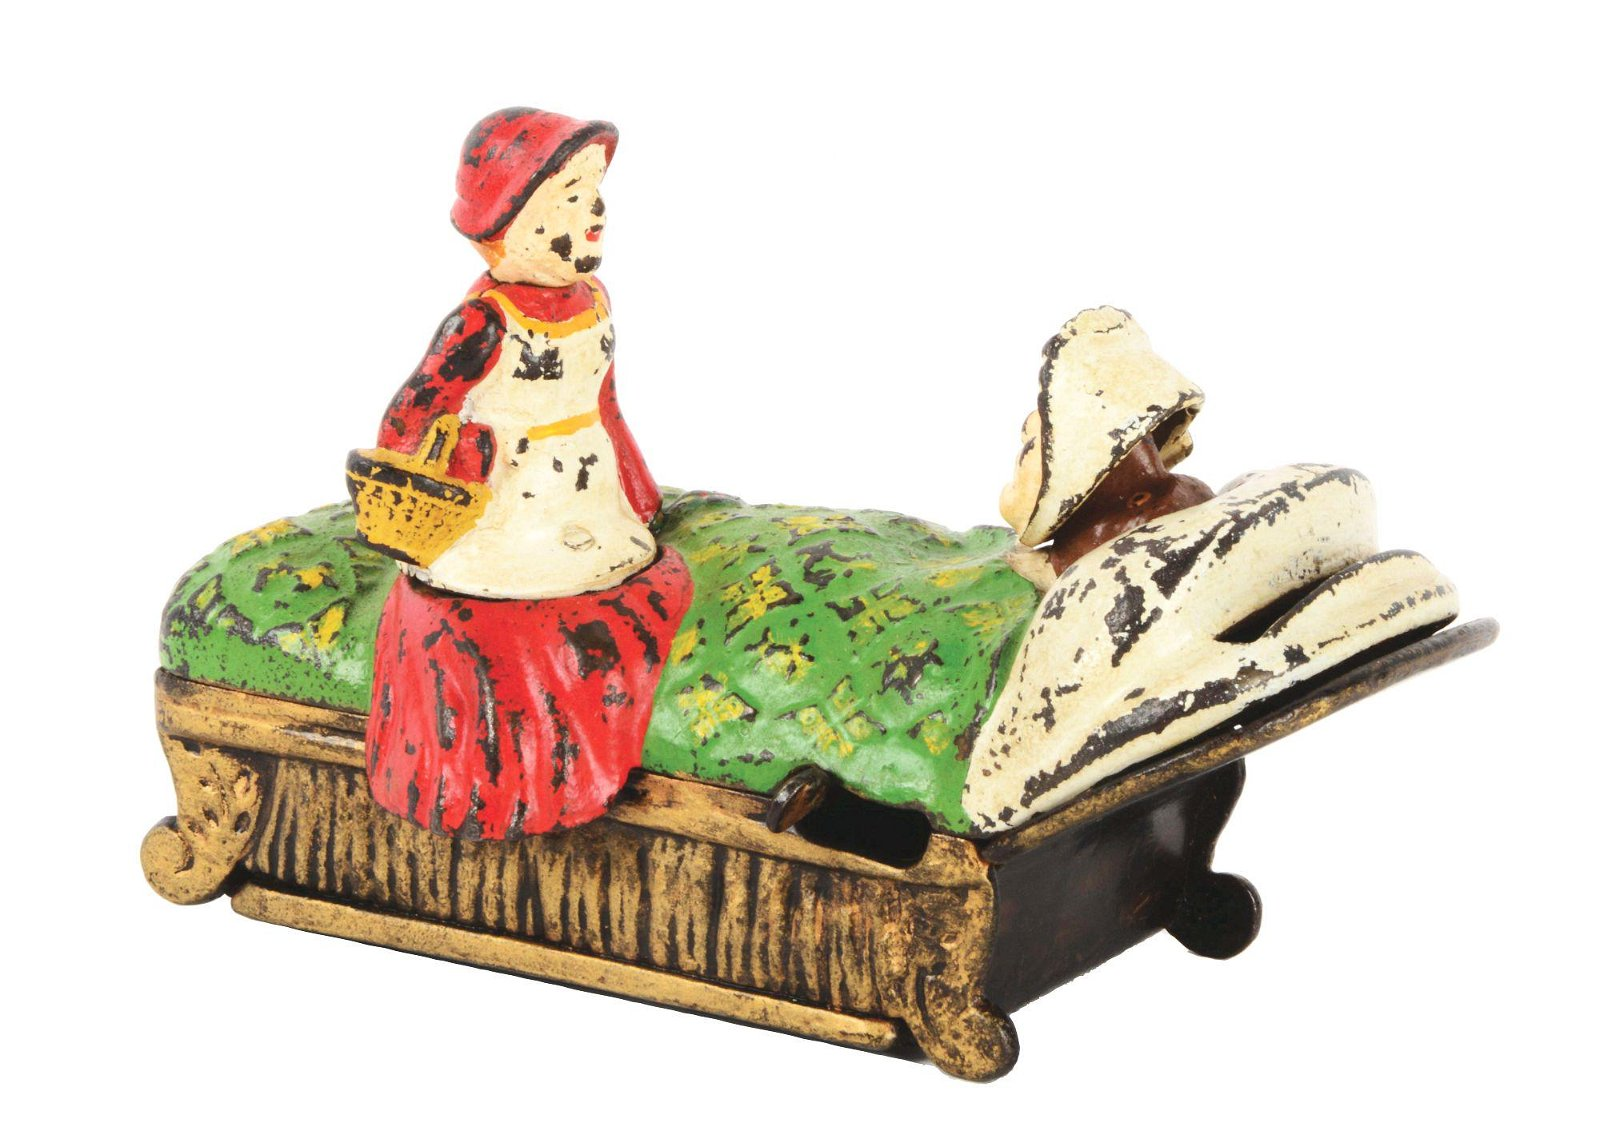 W.S. REED RED RIDING HOOD CAST IRON MECHANICAL BANK.